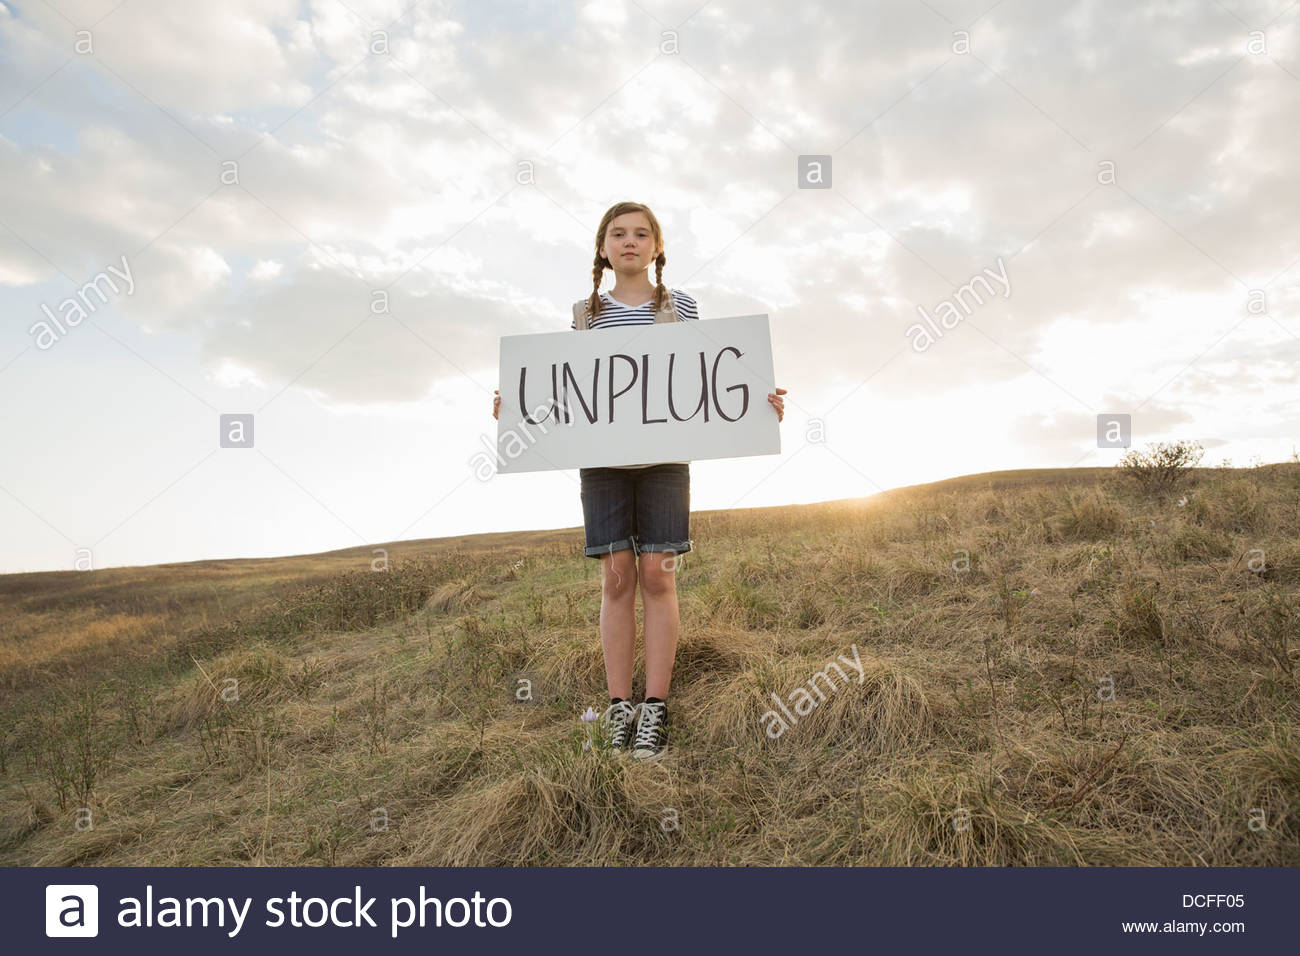 Girl holding unplug sign on hillside - Stock Image